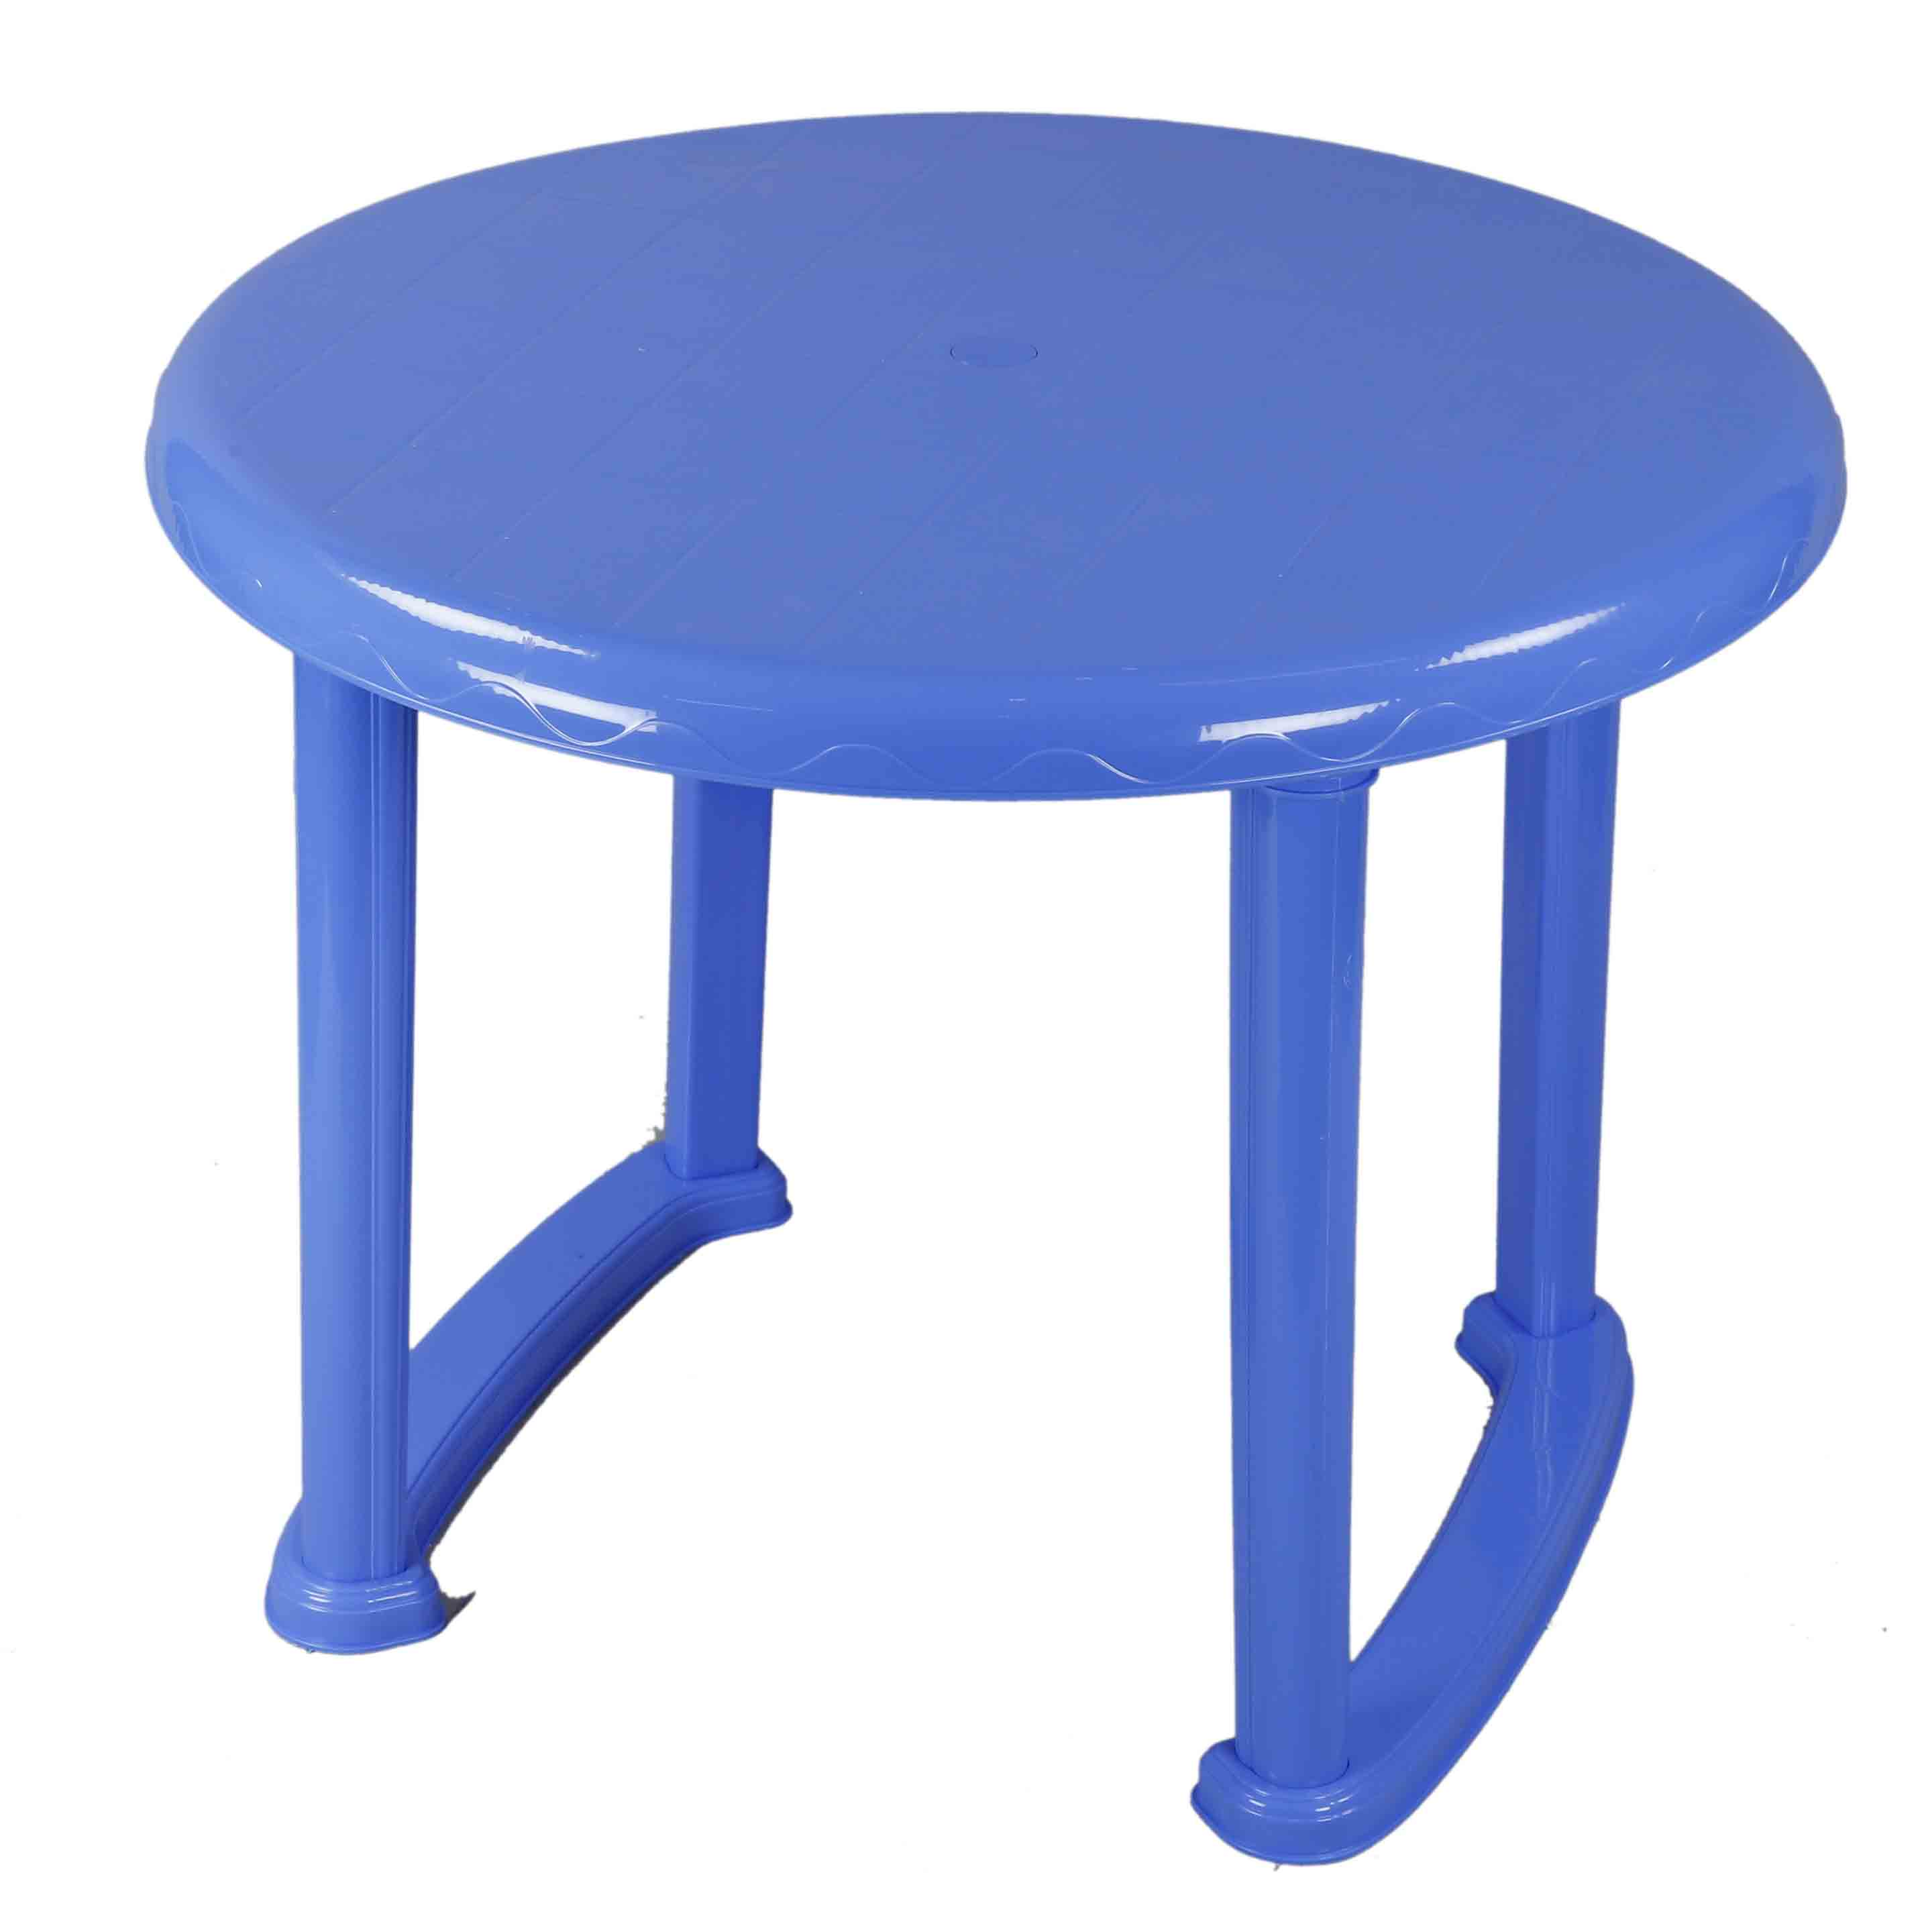 Dining Table 4 Seat Ro Plas/Leg-SM Blue